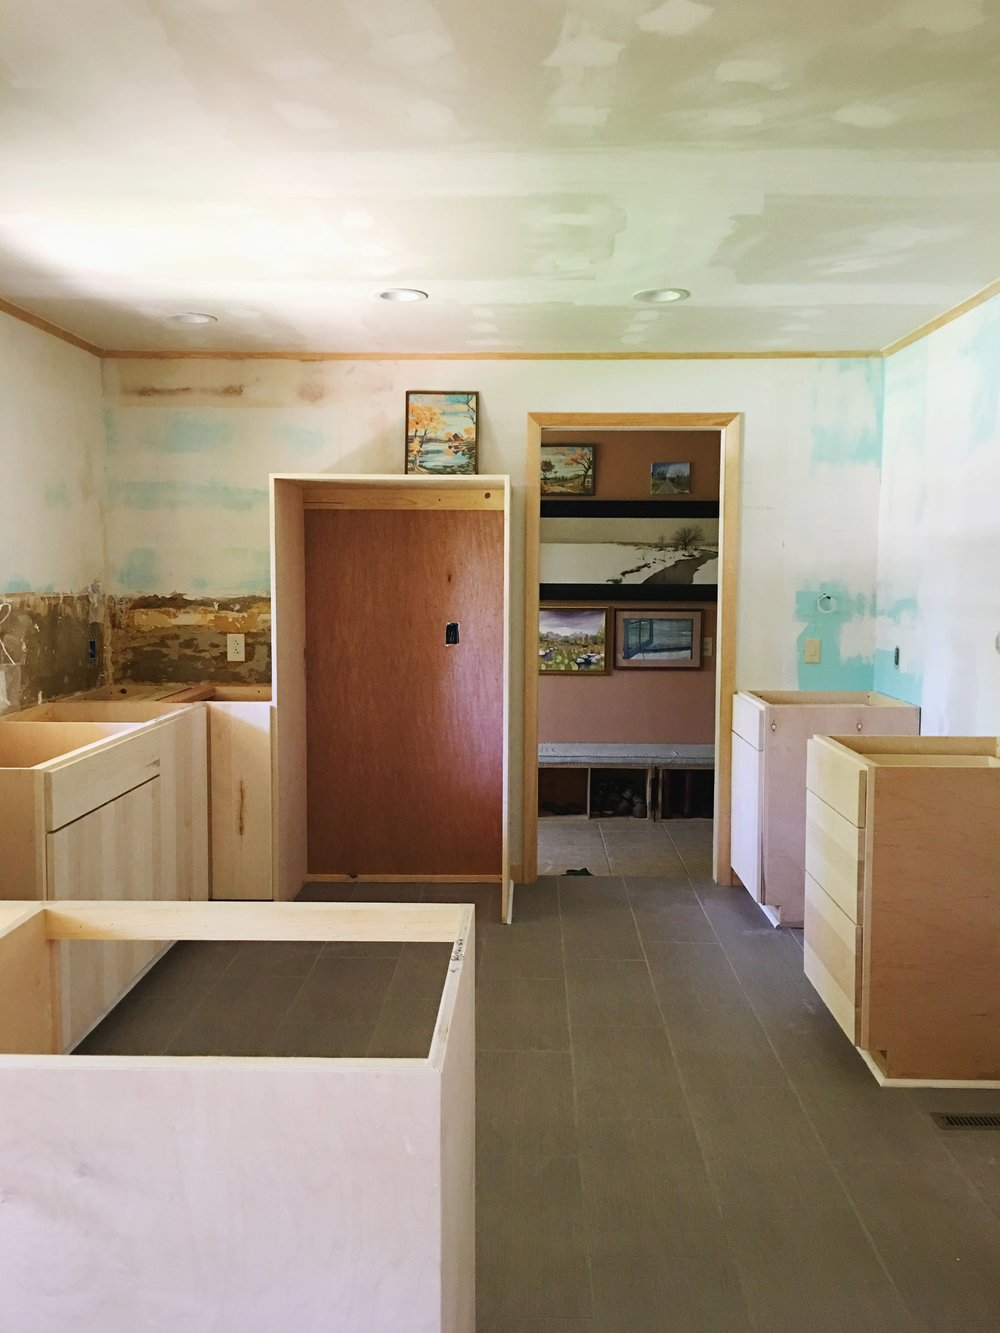 Palmer's kitchen  is about to be painted a bold color! Eeek!